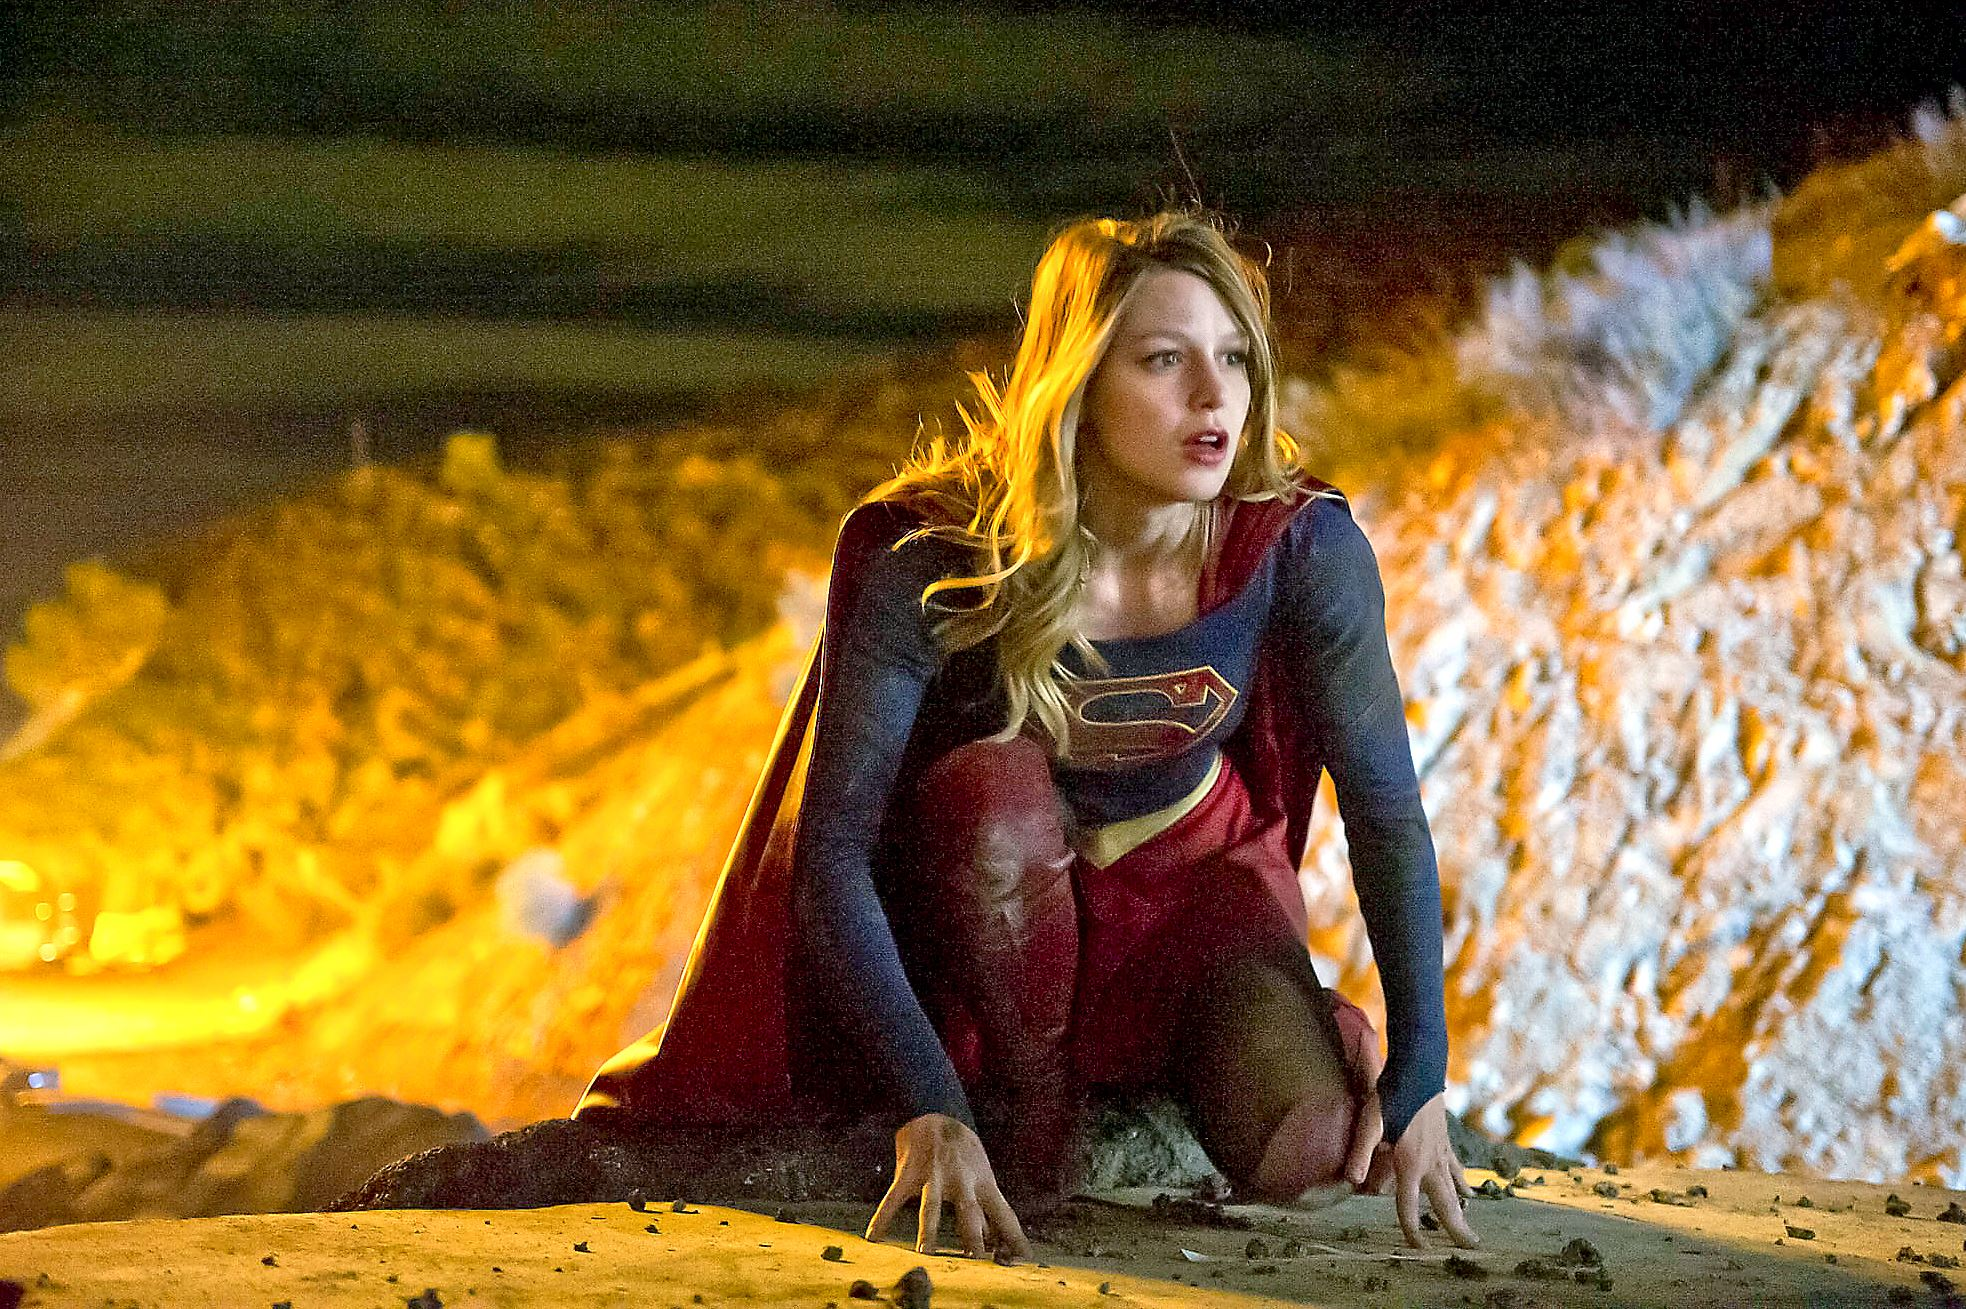 Breaking news: Supergirl is Superman's cousin.